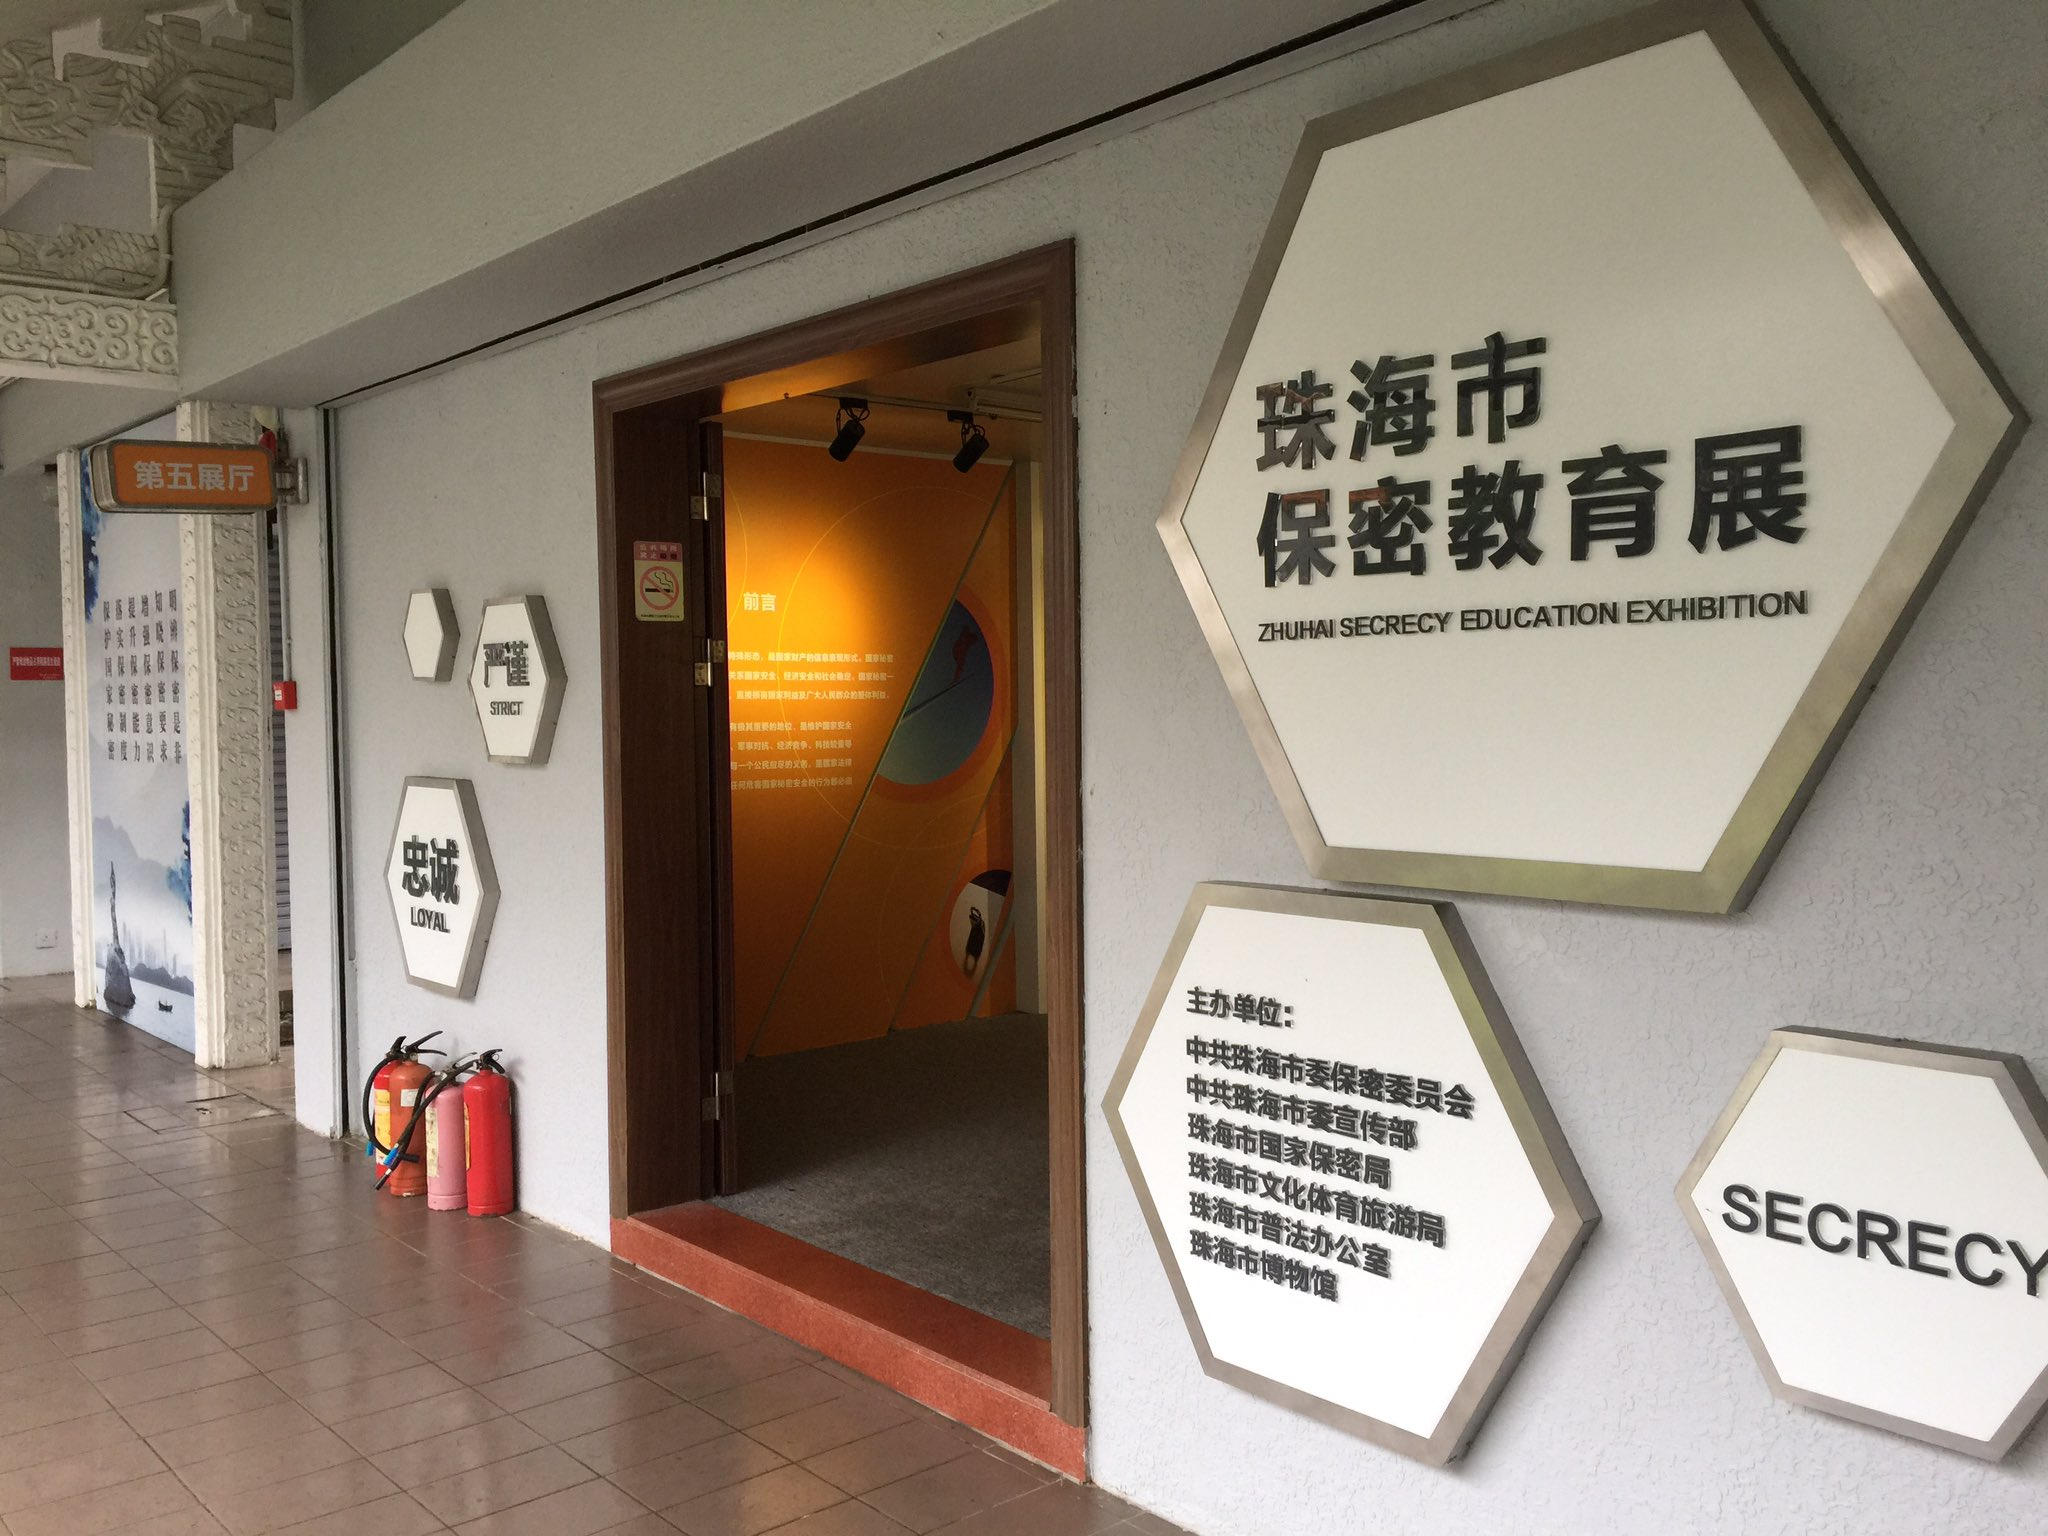 My Chinese isn't good enough to quite make sense of the Zhuhai Secrecy Education Exhibition. https://t.co/gWhzoGM8wi